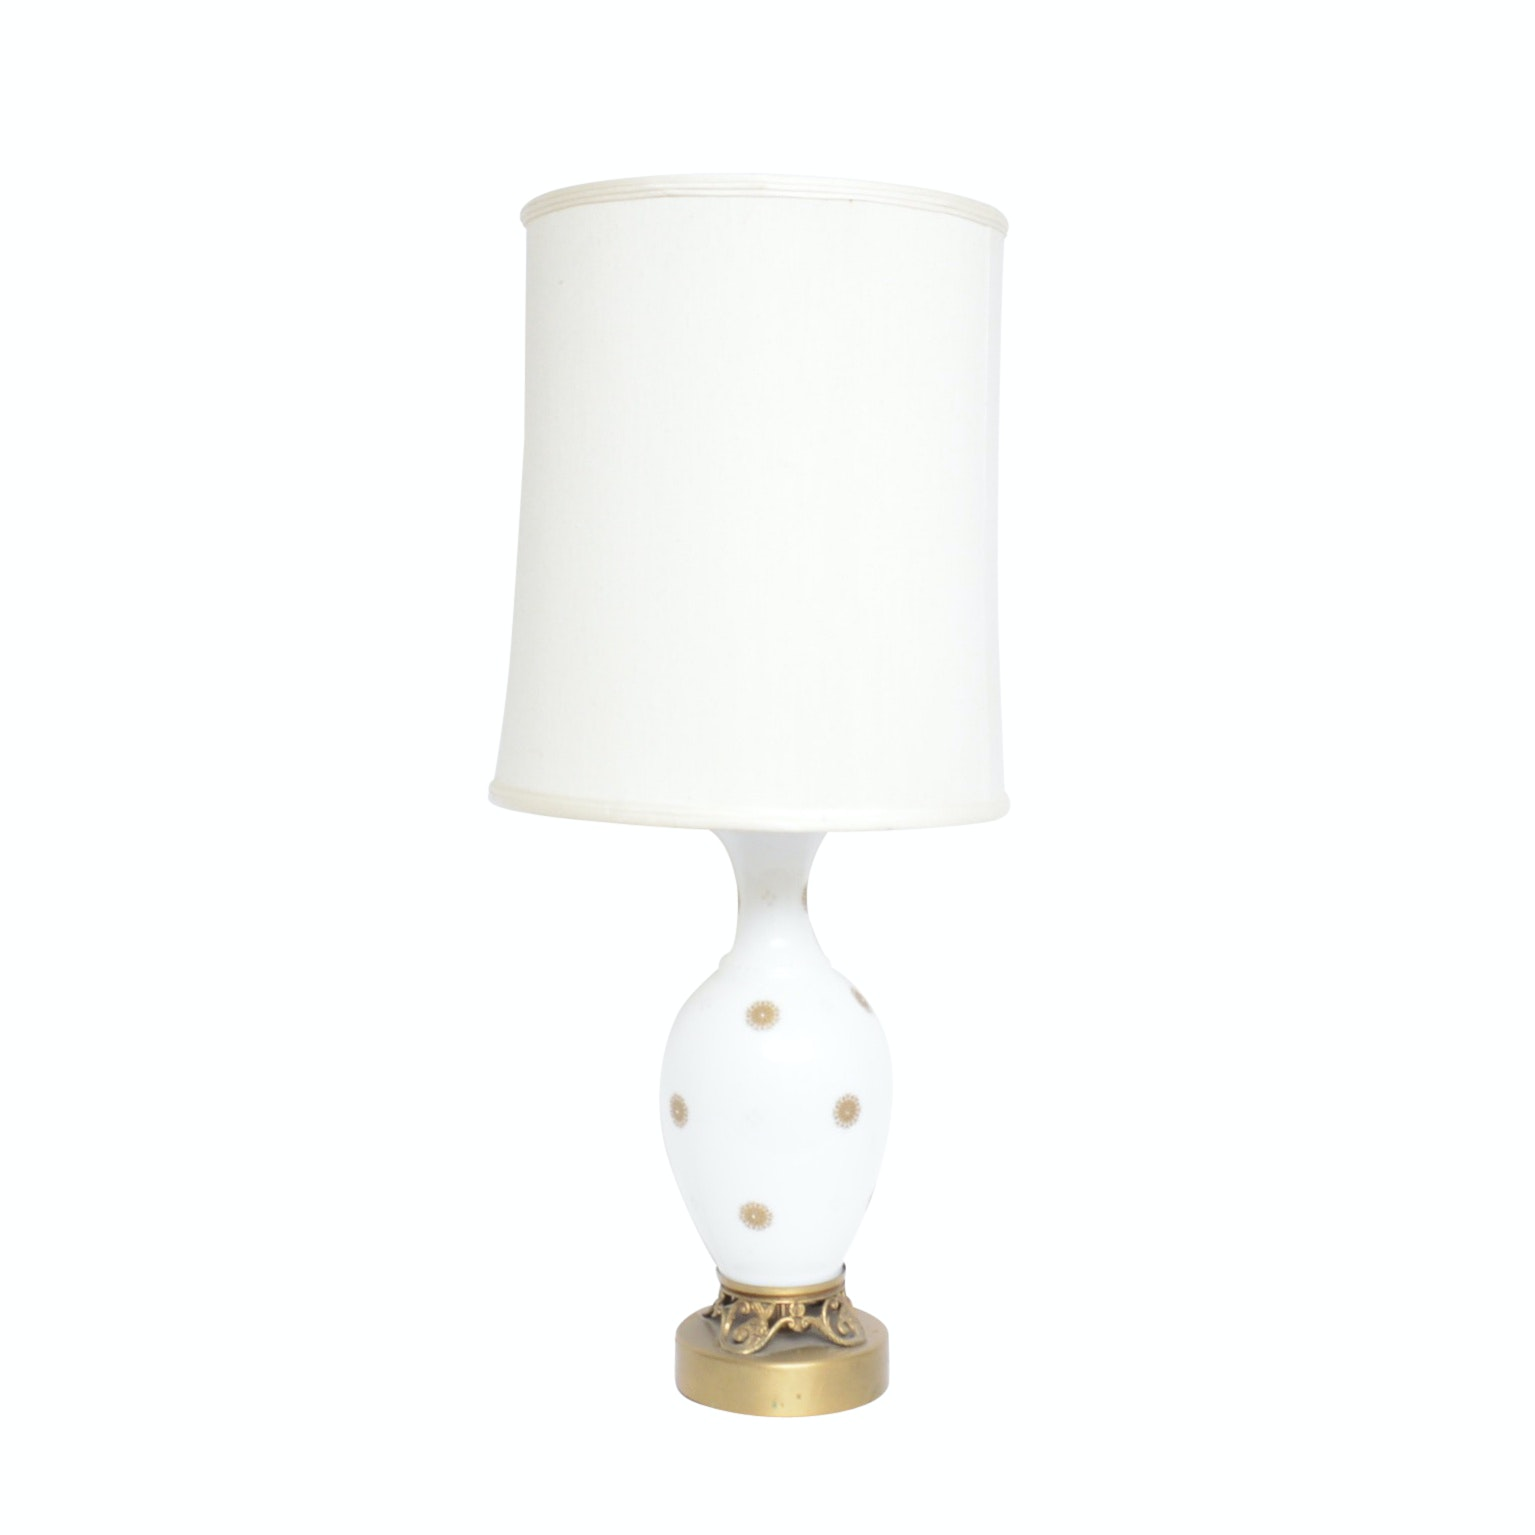 Hand Painted Porcelain and Brass Table Lamp